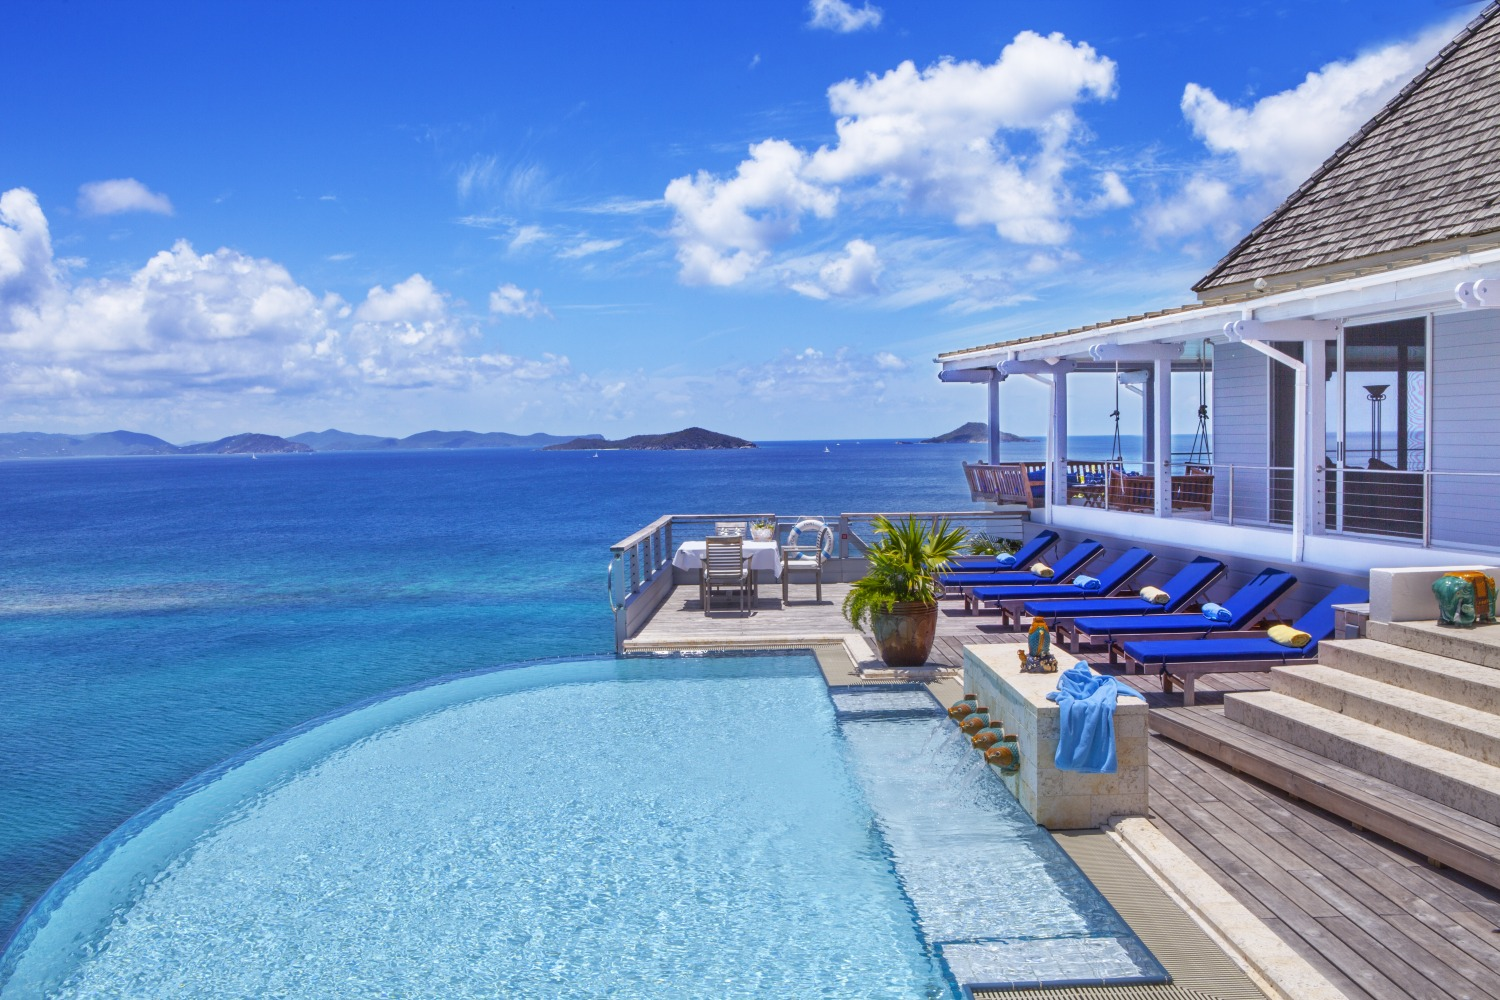 St John Luxury Villas and Homes for Sale in the Virgin Islands